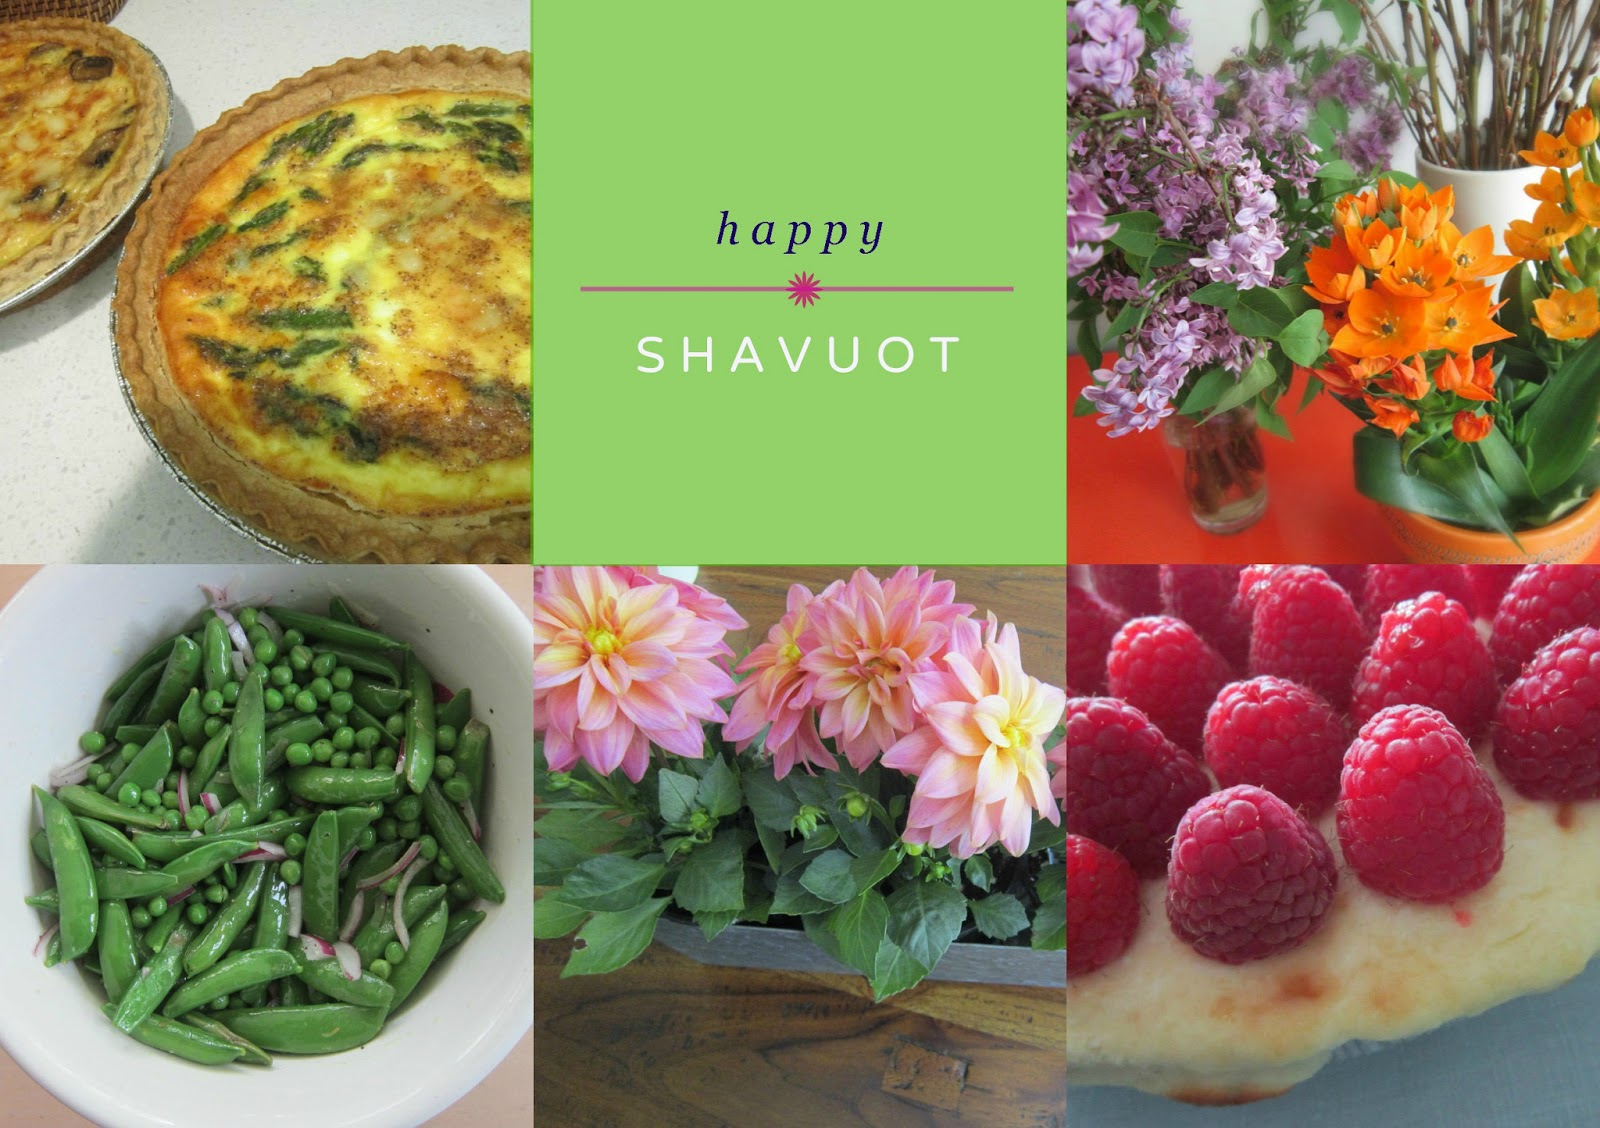 Design Megillah: Happy Shavuot!